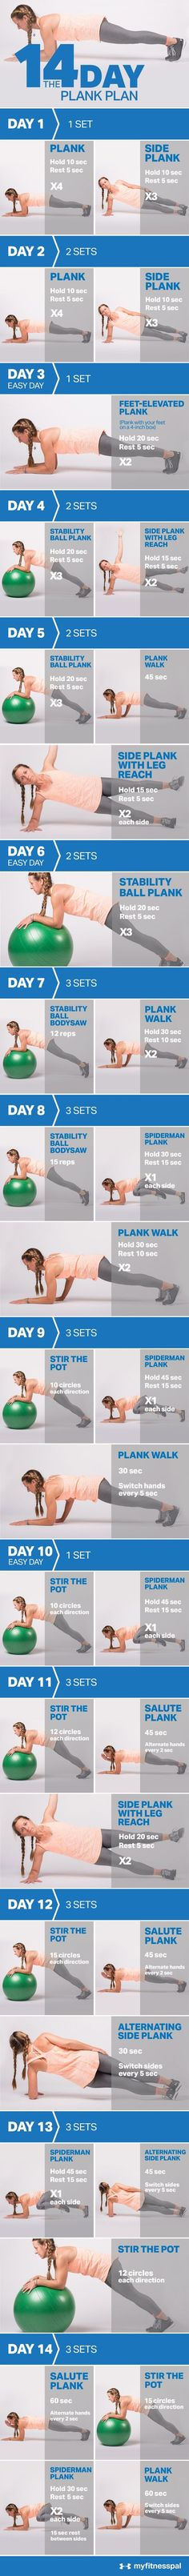 14 Day Plank Challenge You already know the plank is a great core exercise. So we're adding plank variations to amp up your training, target your midsection from different ...